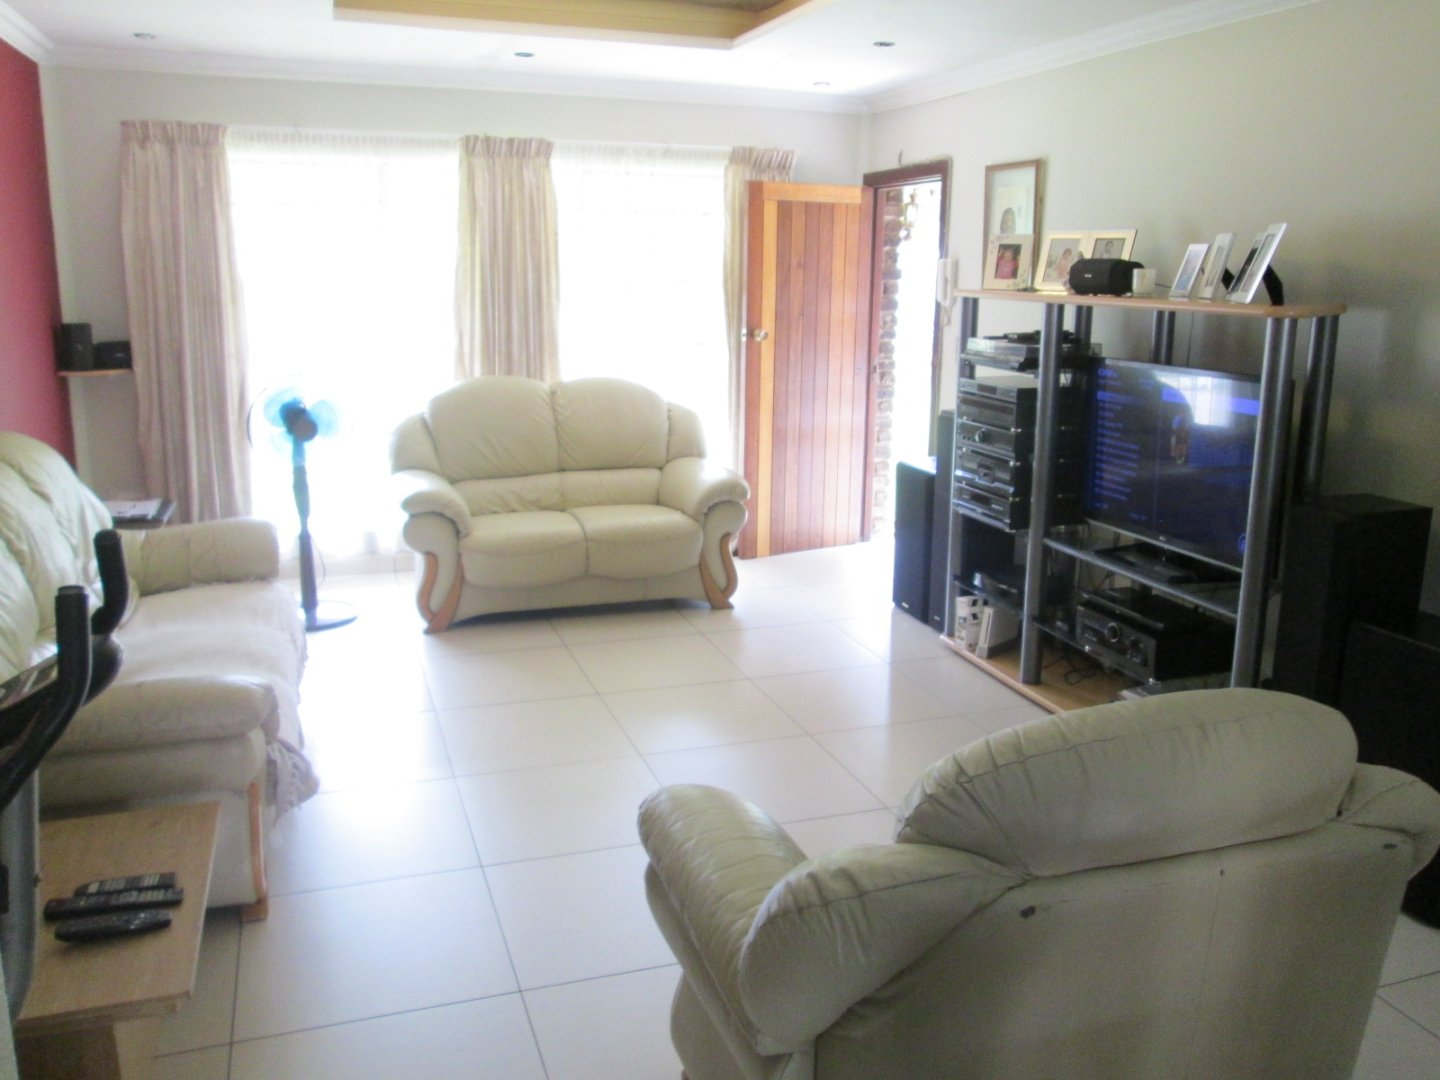 Verwoerdpark property for sale. Ref No: 13585676. Picture no 2